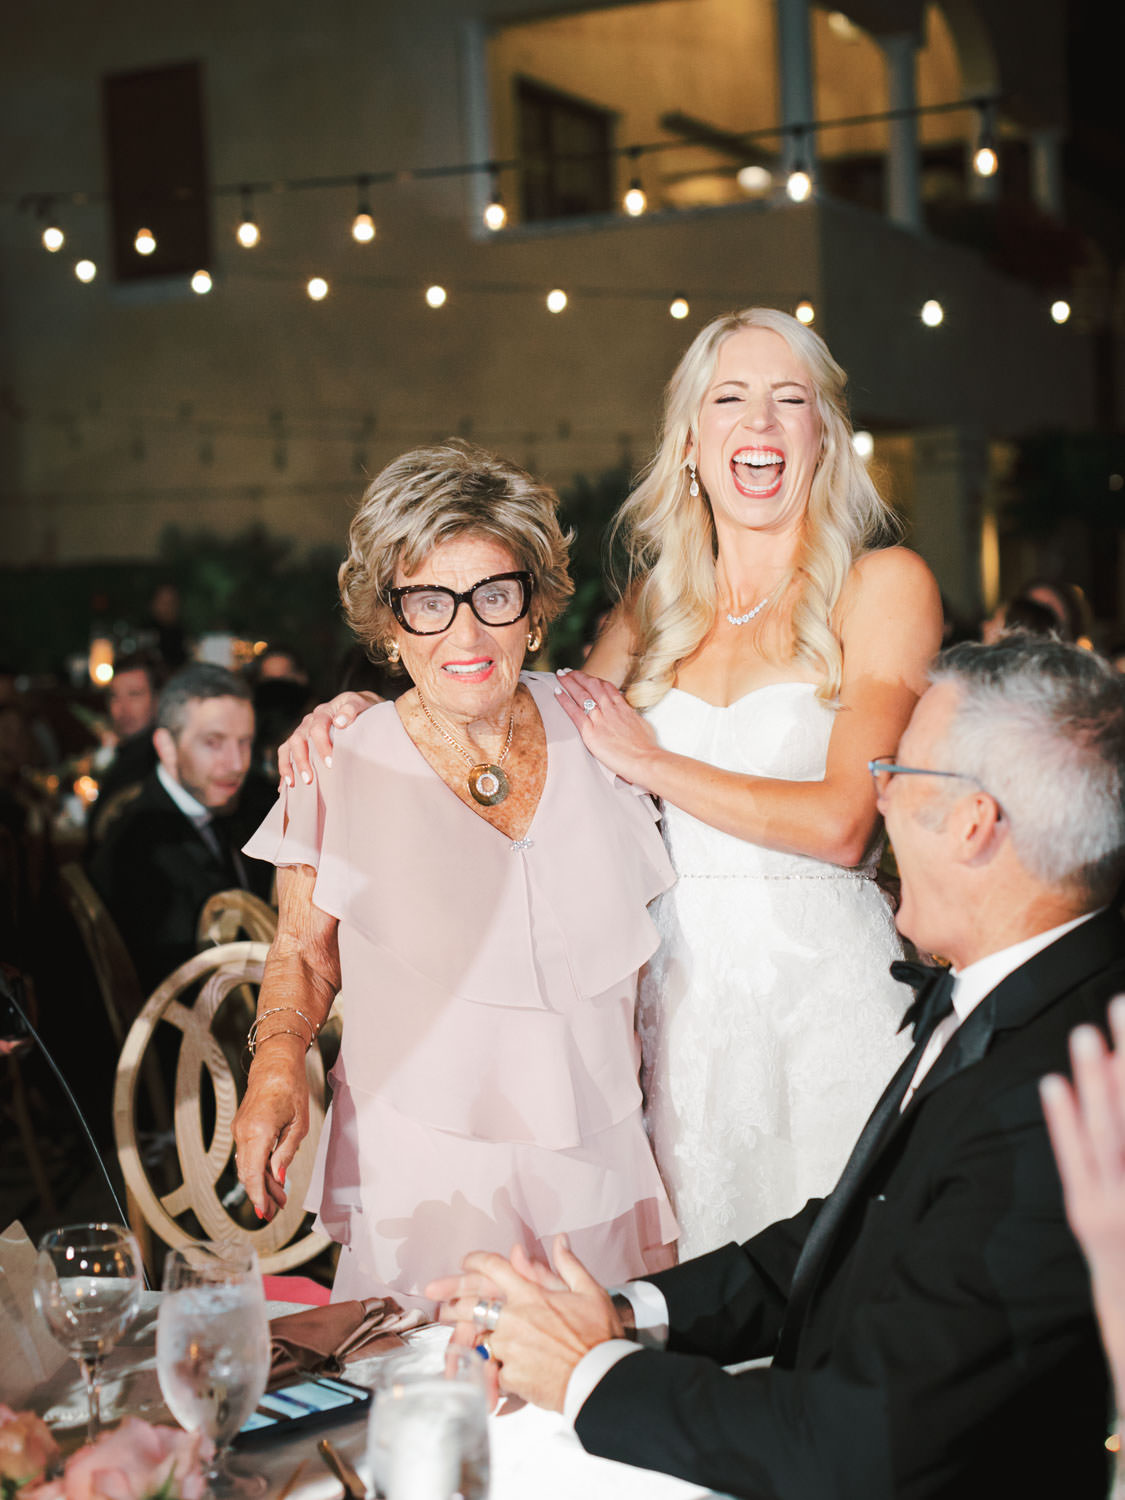 Bride laughing hysterically at her grandmother's wedding toast. Miramonte Resort wedding reception. Photography by Cavin Elizabeth.